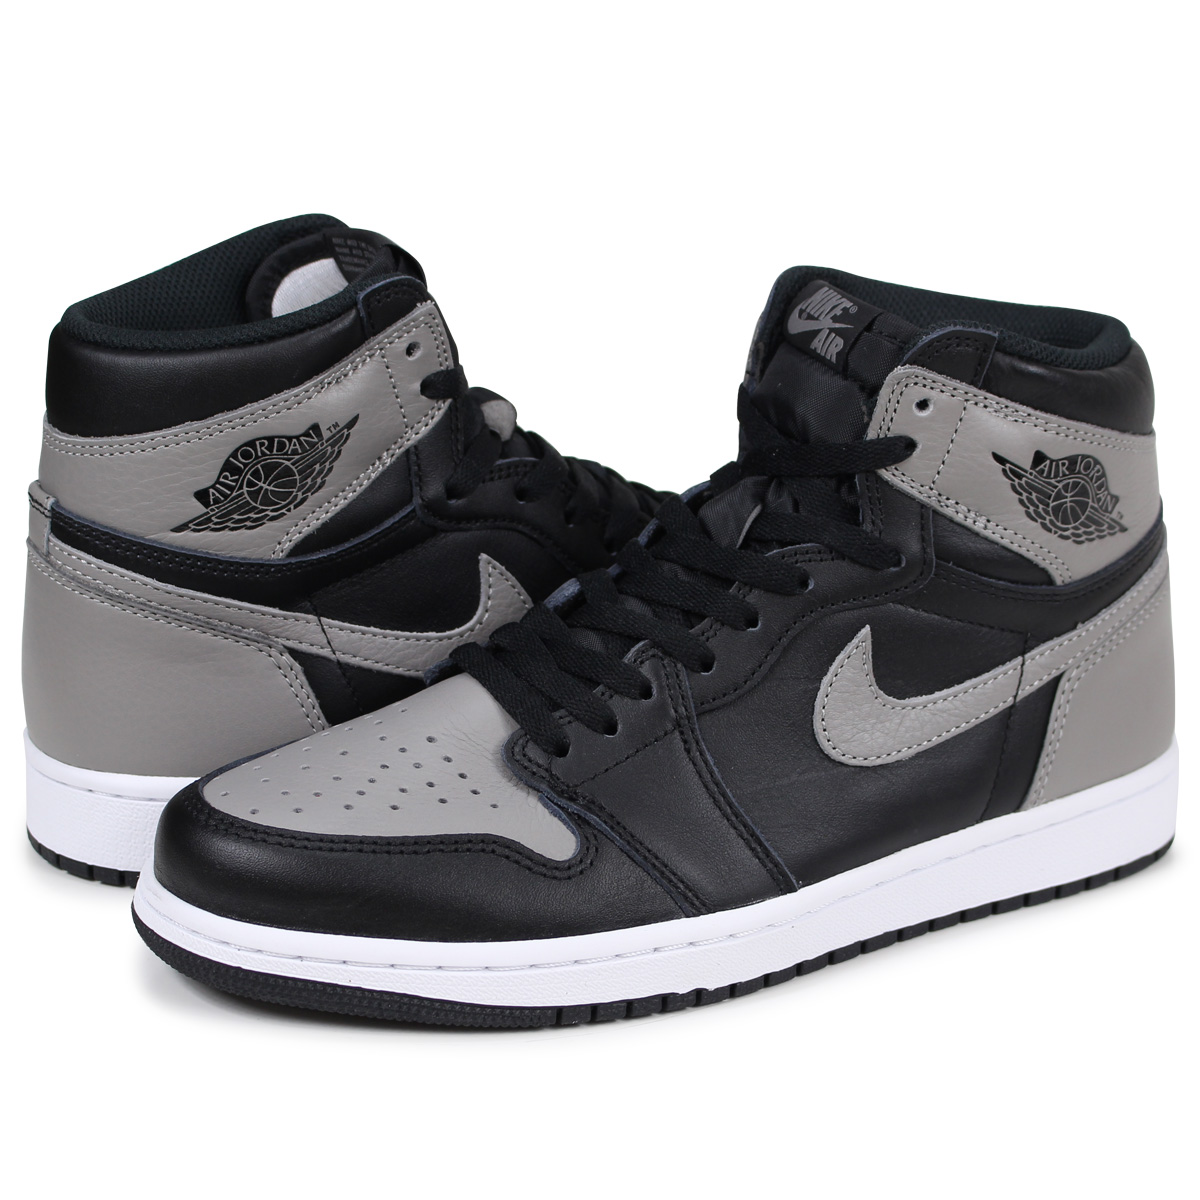 more photos edc53 ddad0 Whats up Sports: NIKE AIR JORDAN 1 RETRO HIGH OG SHADOW Nike Air Jordan 1  nostalgic high sneakers men 555,088-013 gray [load planned Shinnyu load in  ...